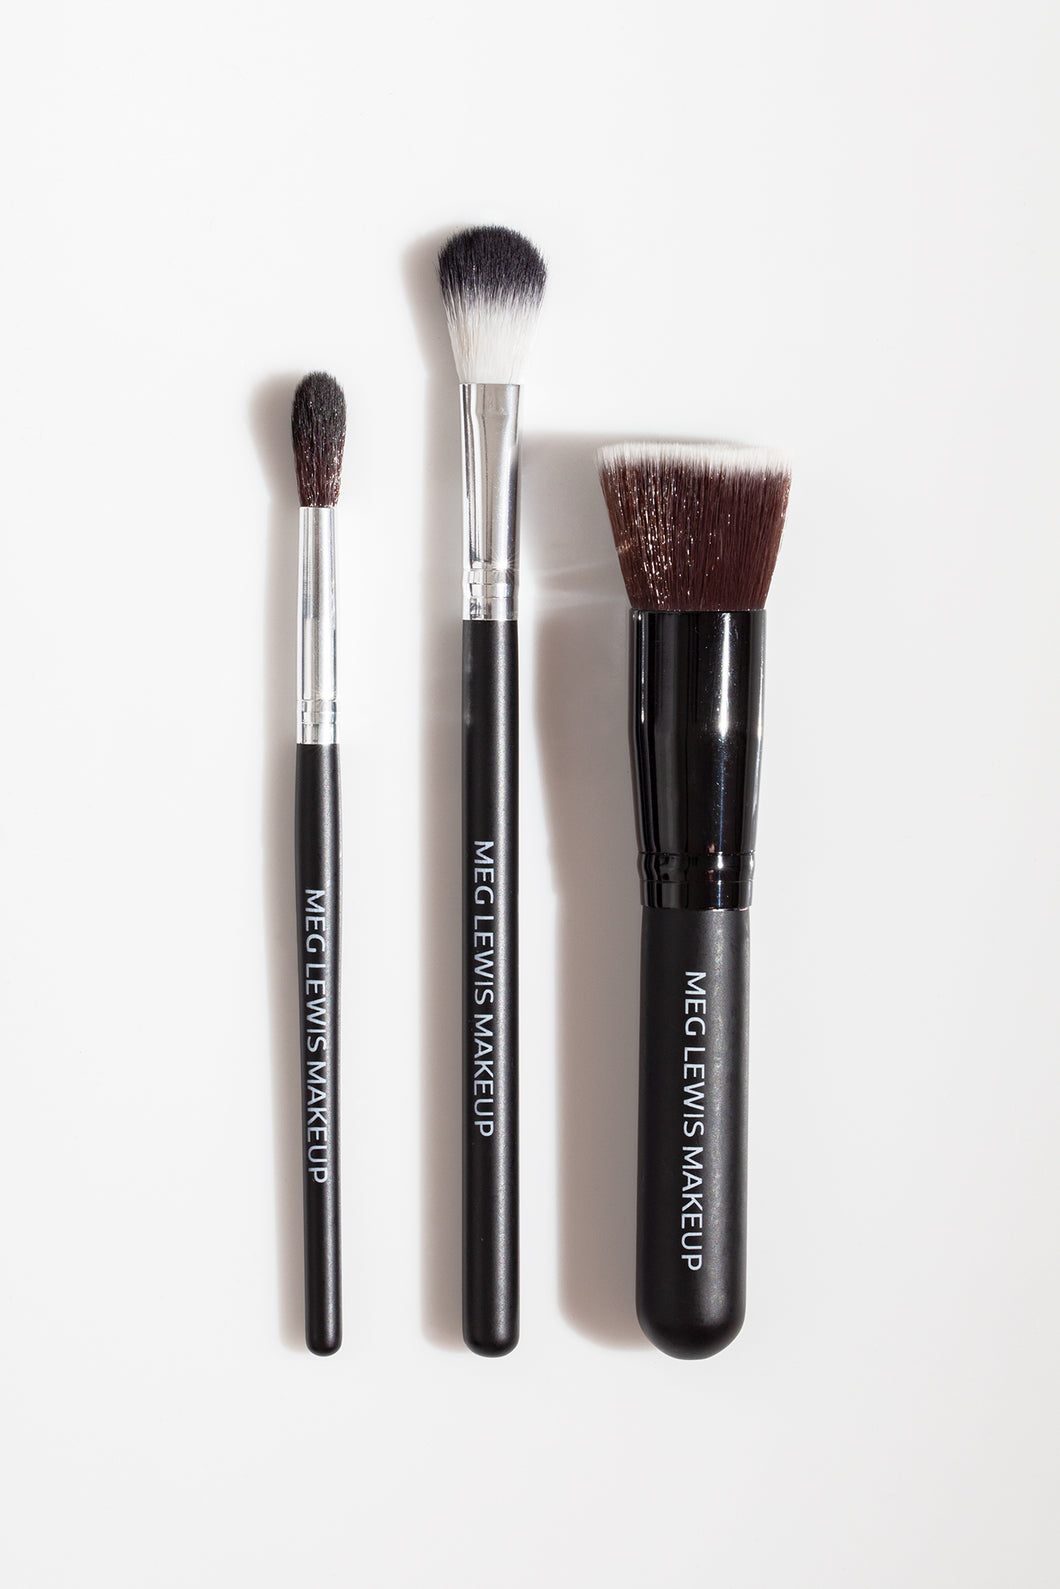 Classic Brush Essentials collection - Meg Lewis the Store